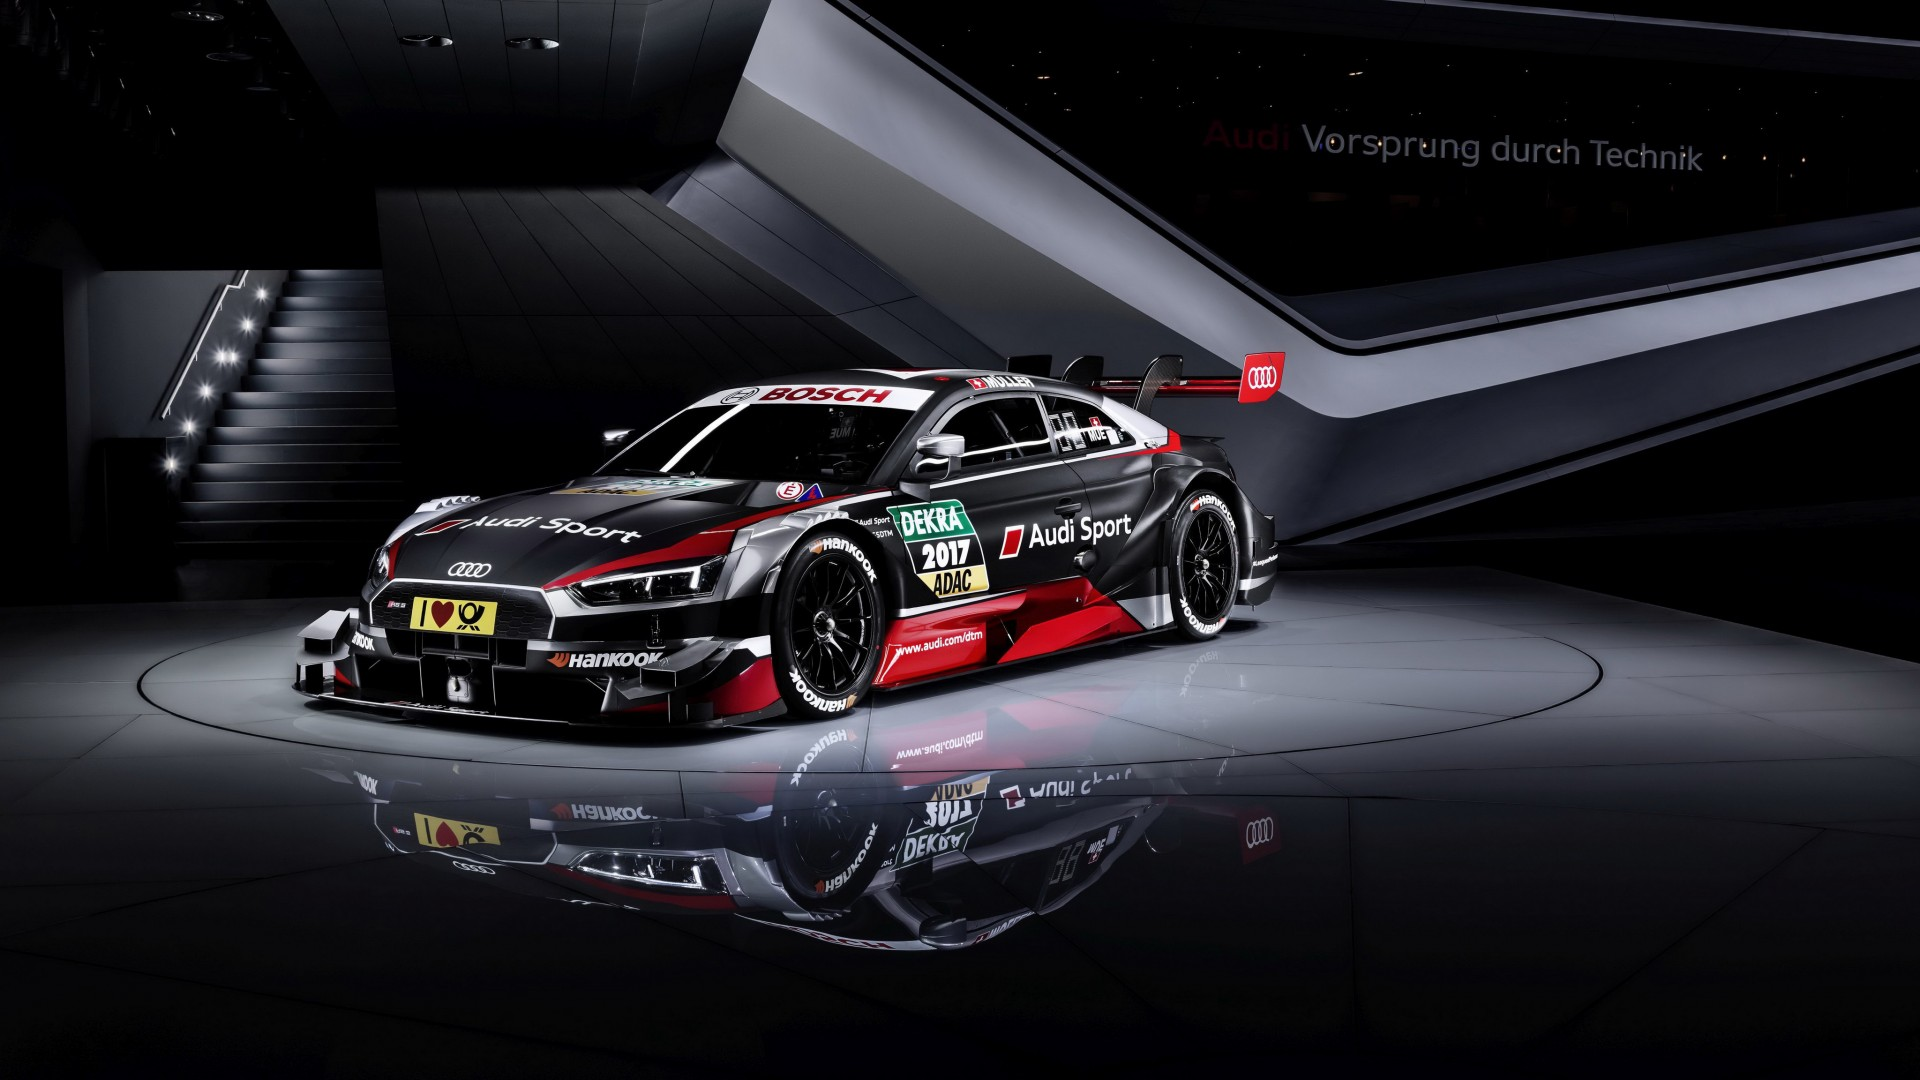 2018 Audi RS 5 Coupe DTM Wallpaper | HD Car Wallpapers ...